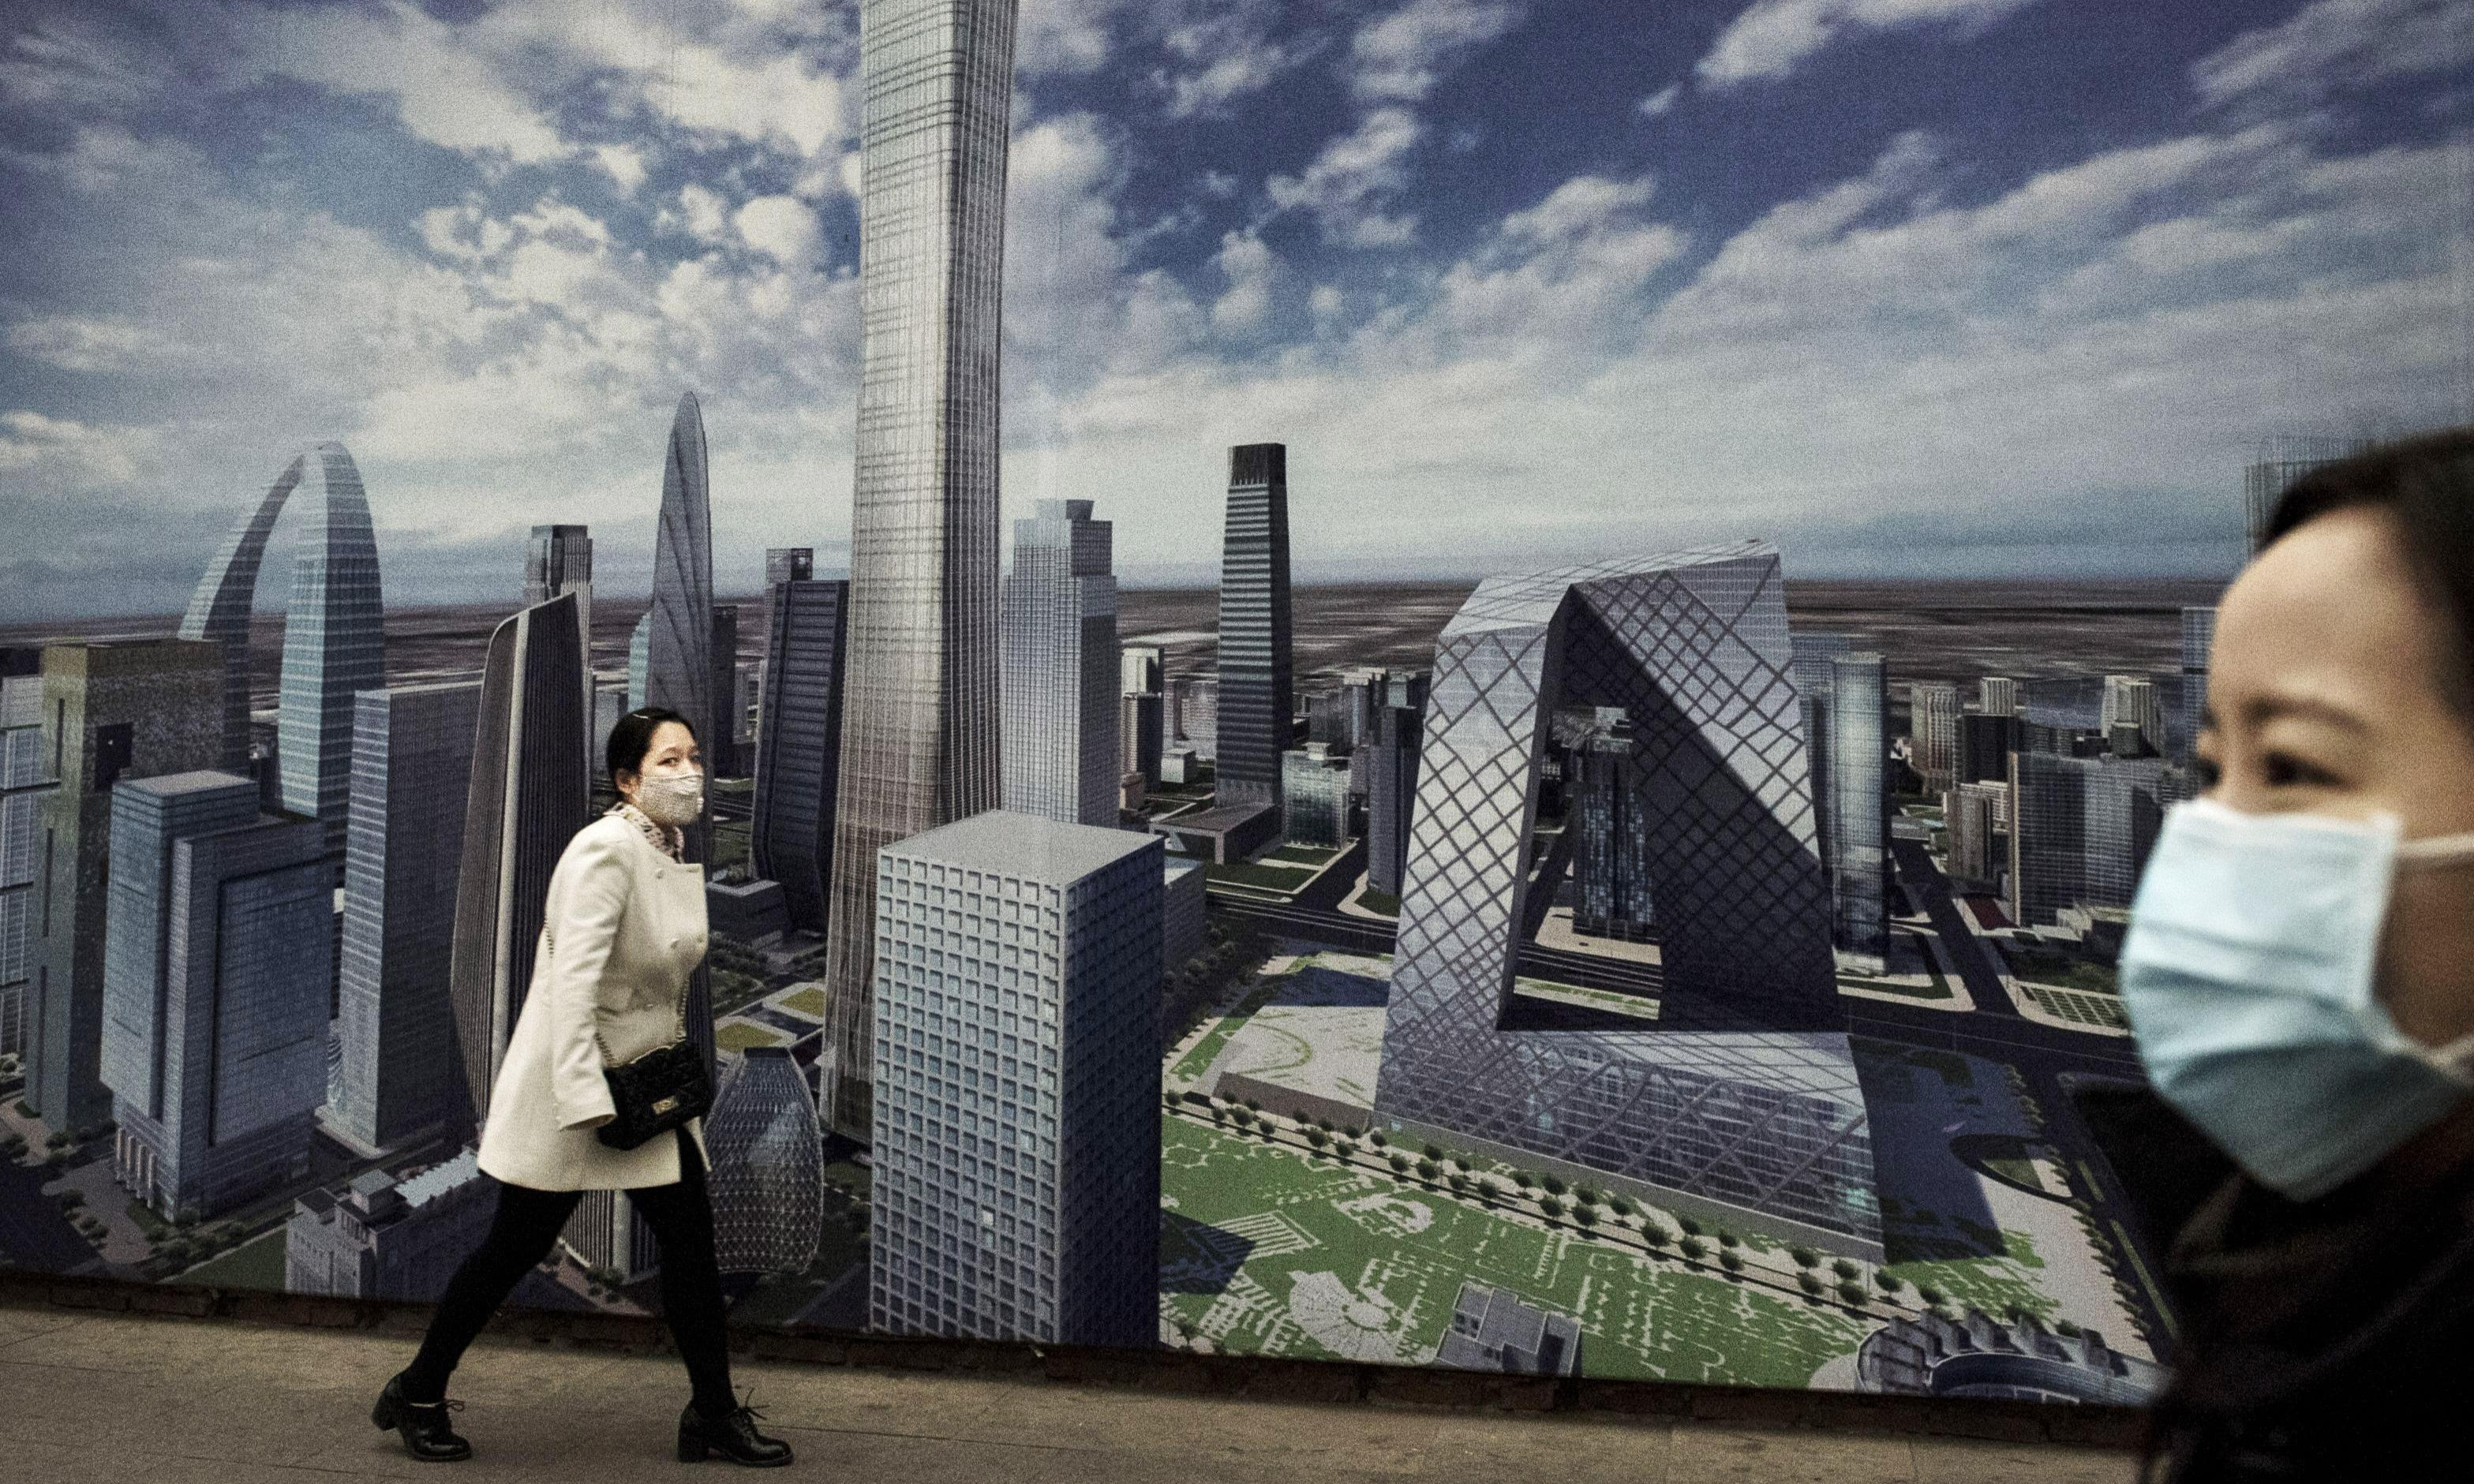 Chinese greenhouse gas emissions may peak by 2025, says study